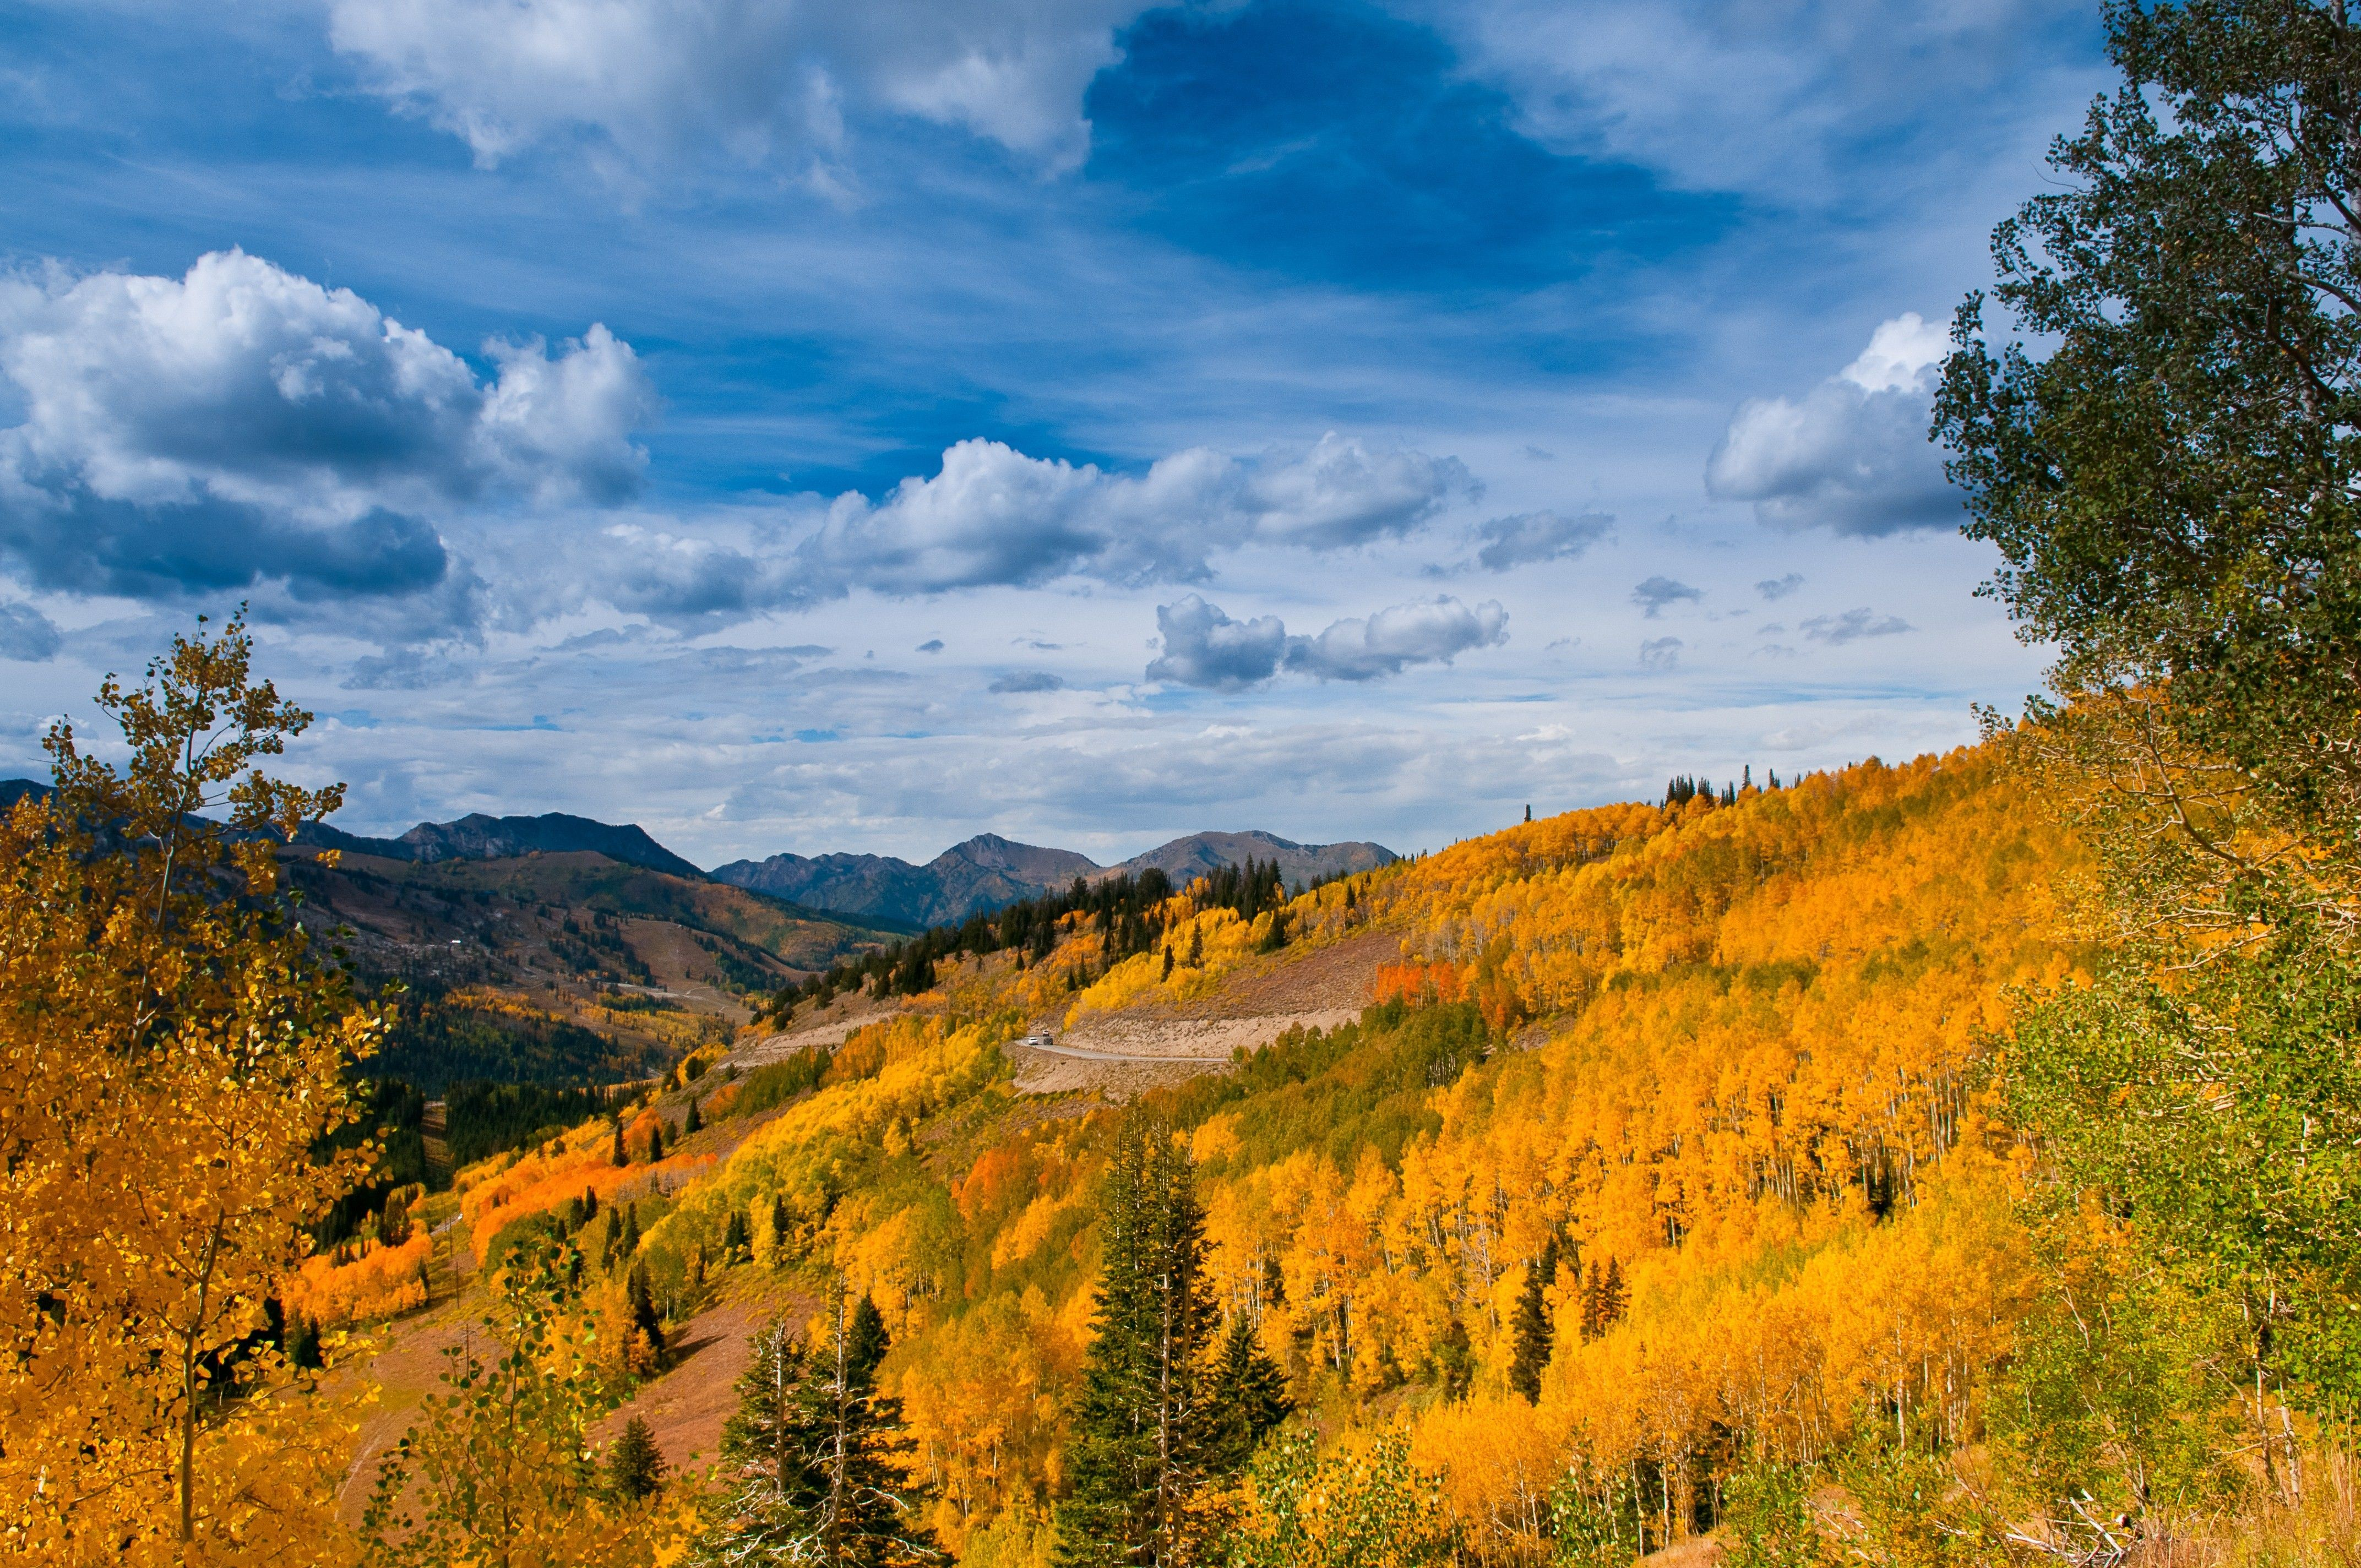 Mountainside scenery of yellow trees, with a blue sky and clouds above.